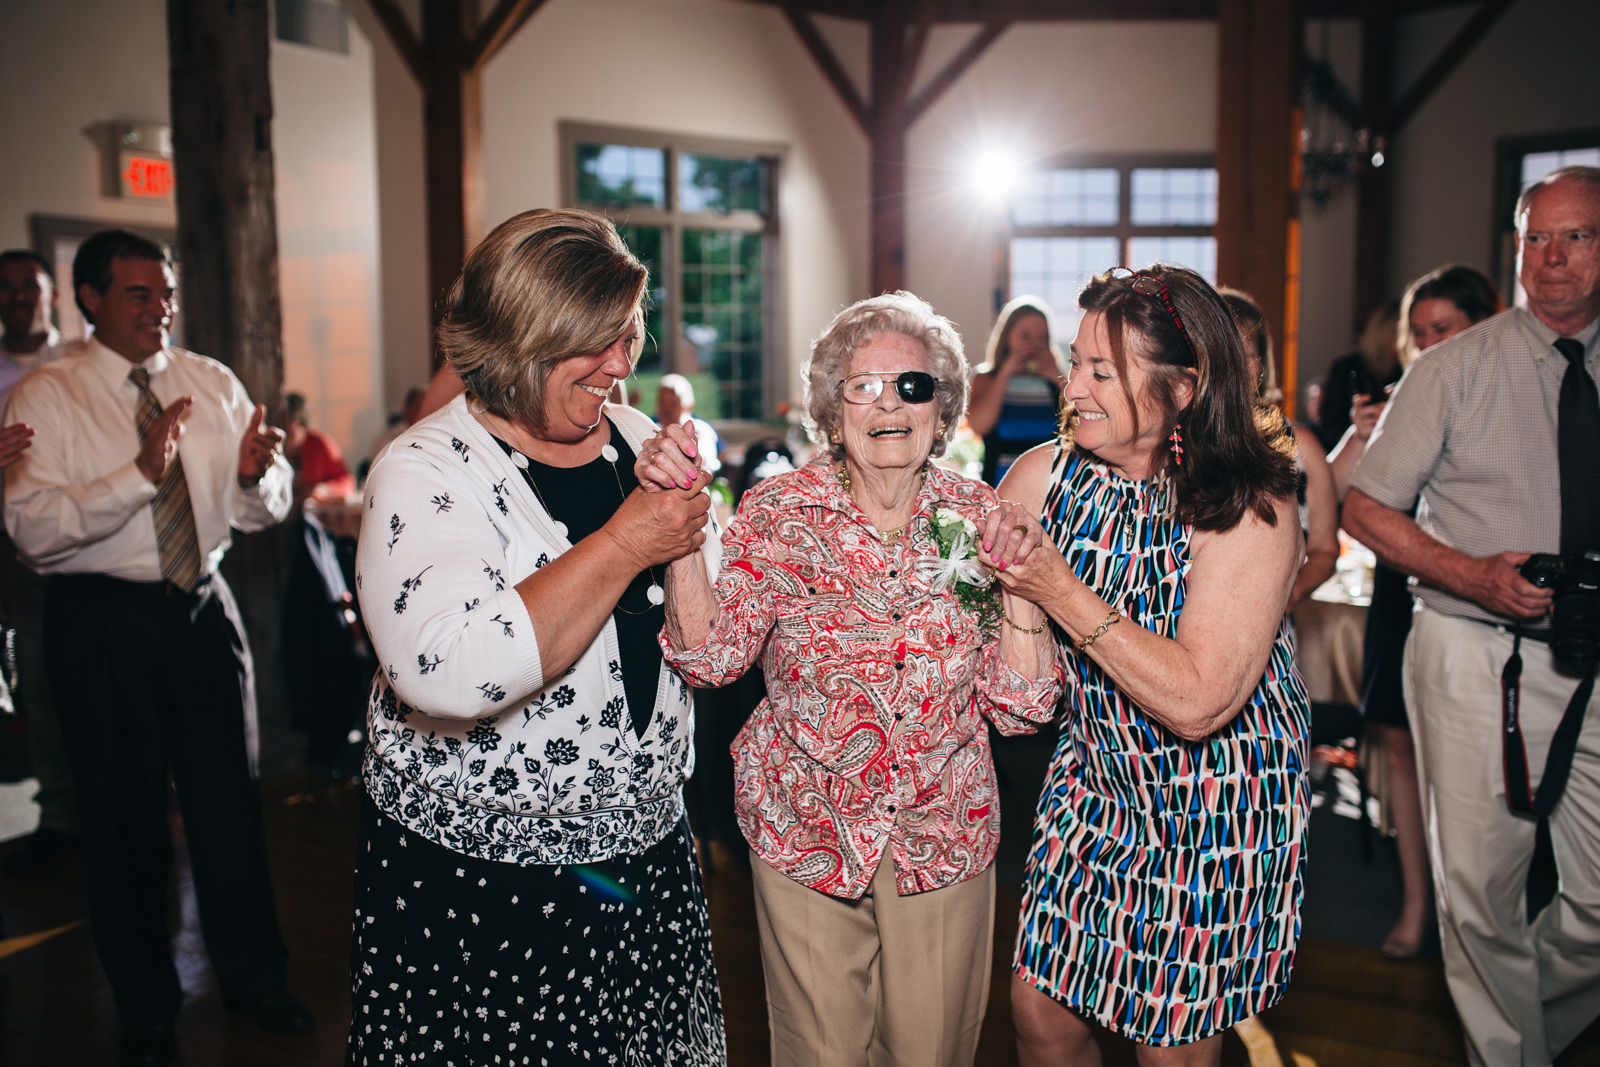 Grandma_Dances_at_Wedding_Reception